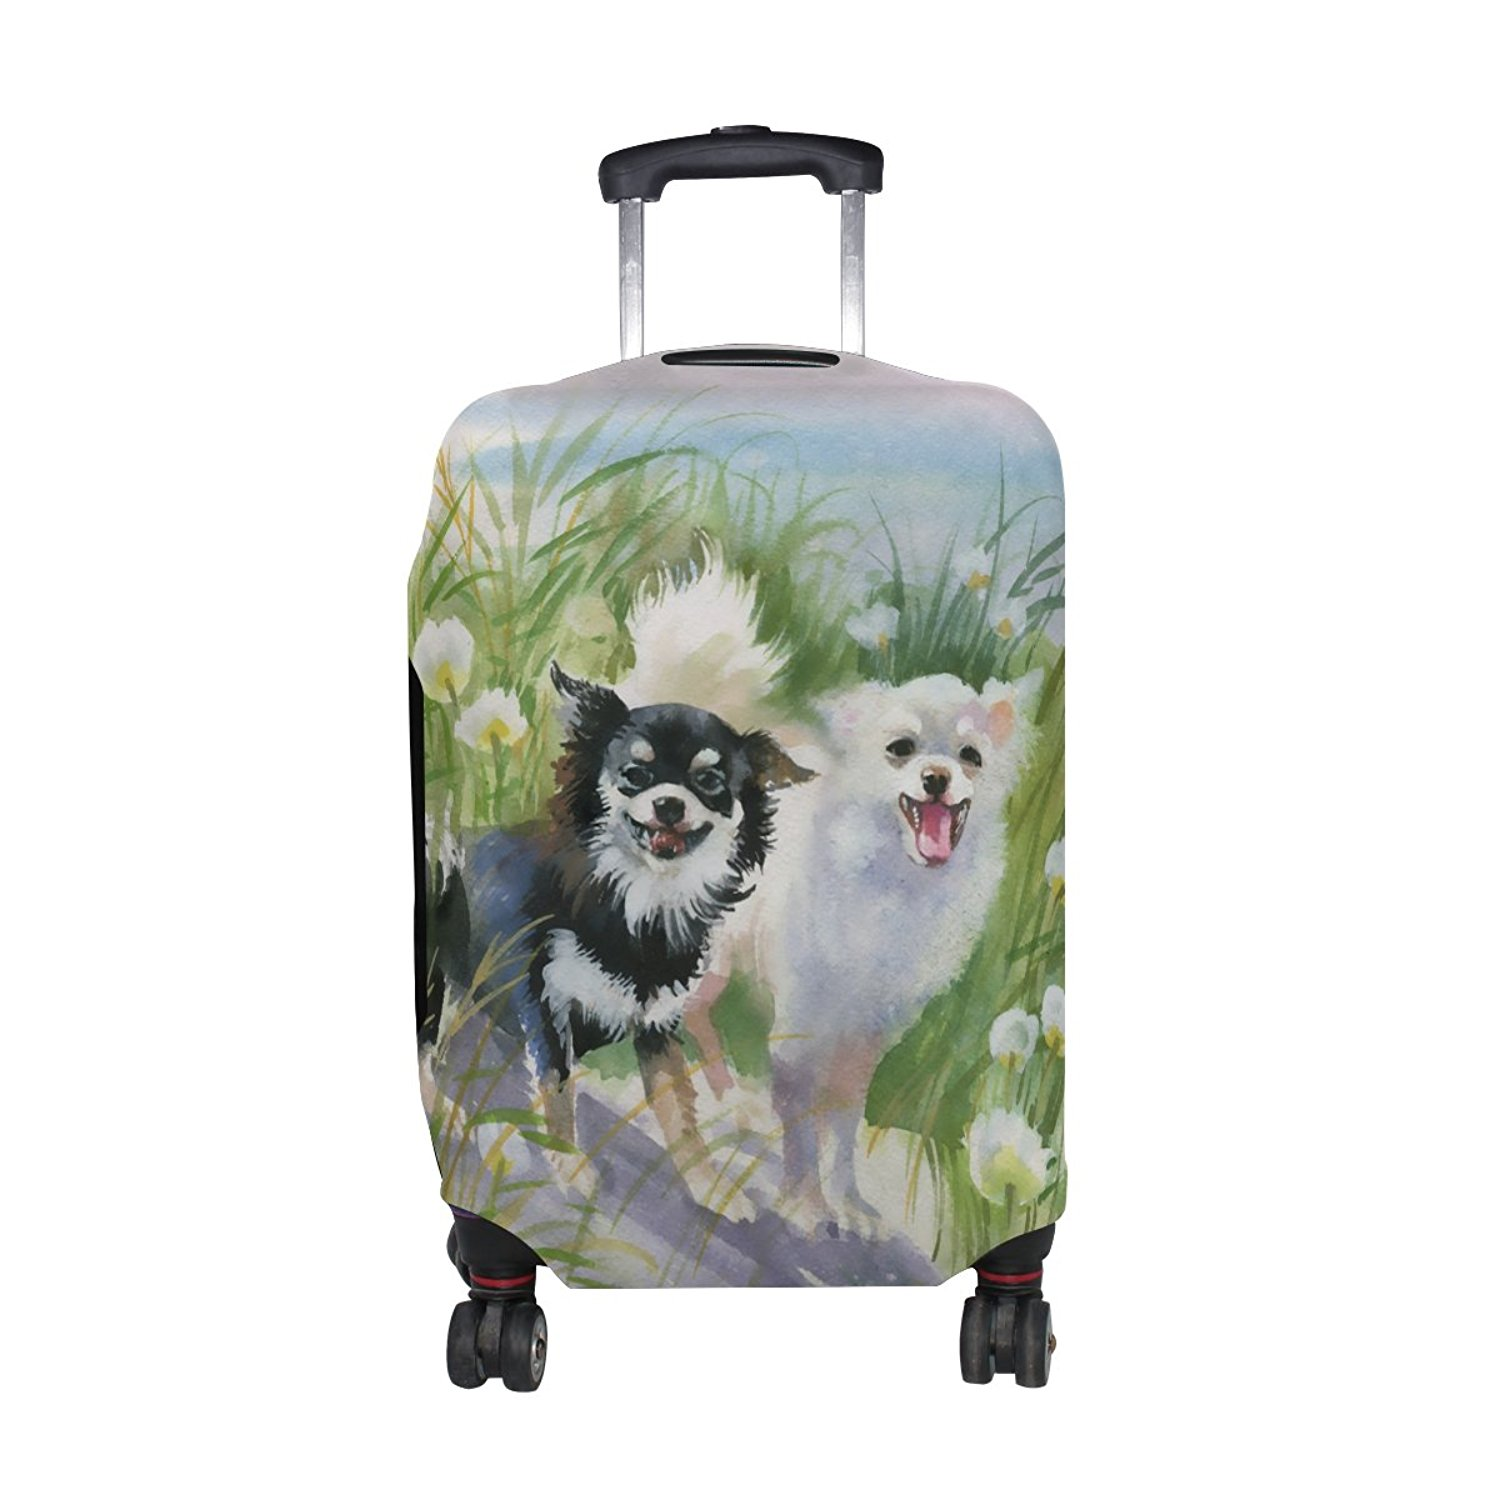 Animal Brid Pelikan Lightbrown Pattern Print Travel Luggage Protector Baggage Suitcase Cover Fits 18-21 Inch Luggage